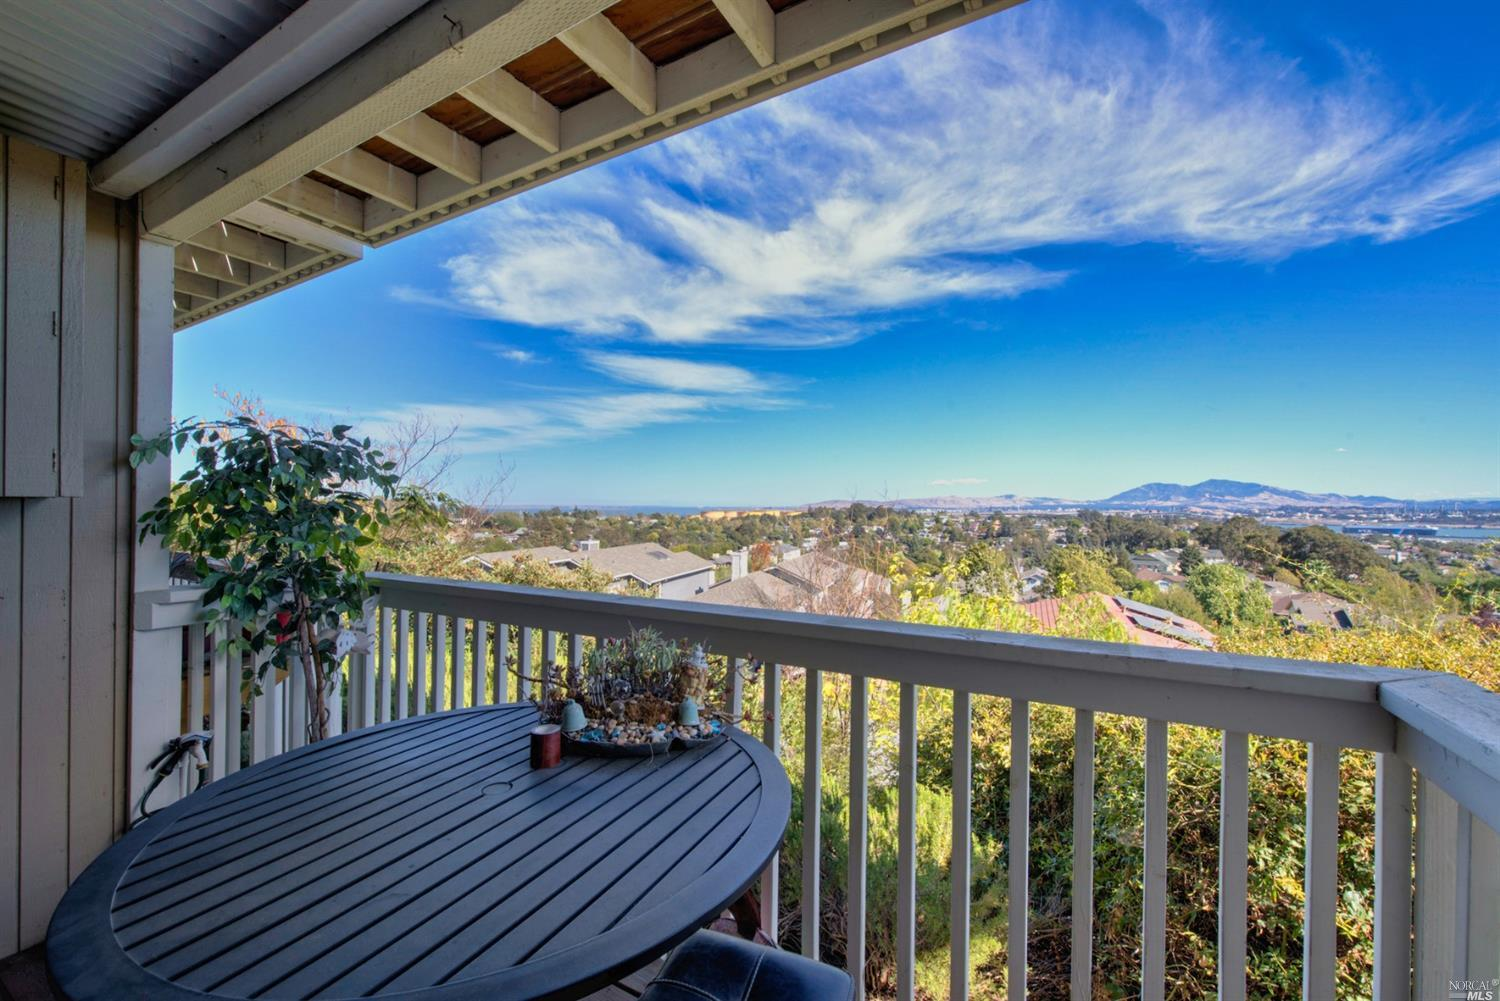 Views Views Views! This Gorgeous GROUND LEVEL 2 Bed 2 Full Bath Condo Features Stunning Views Of The